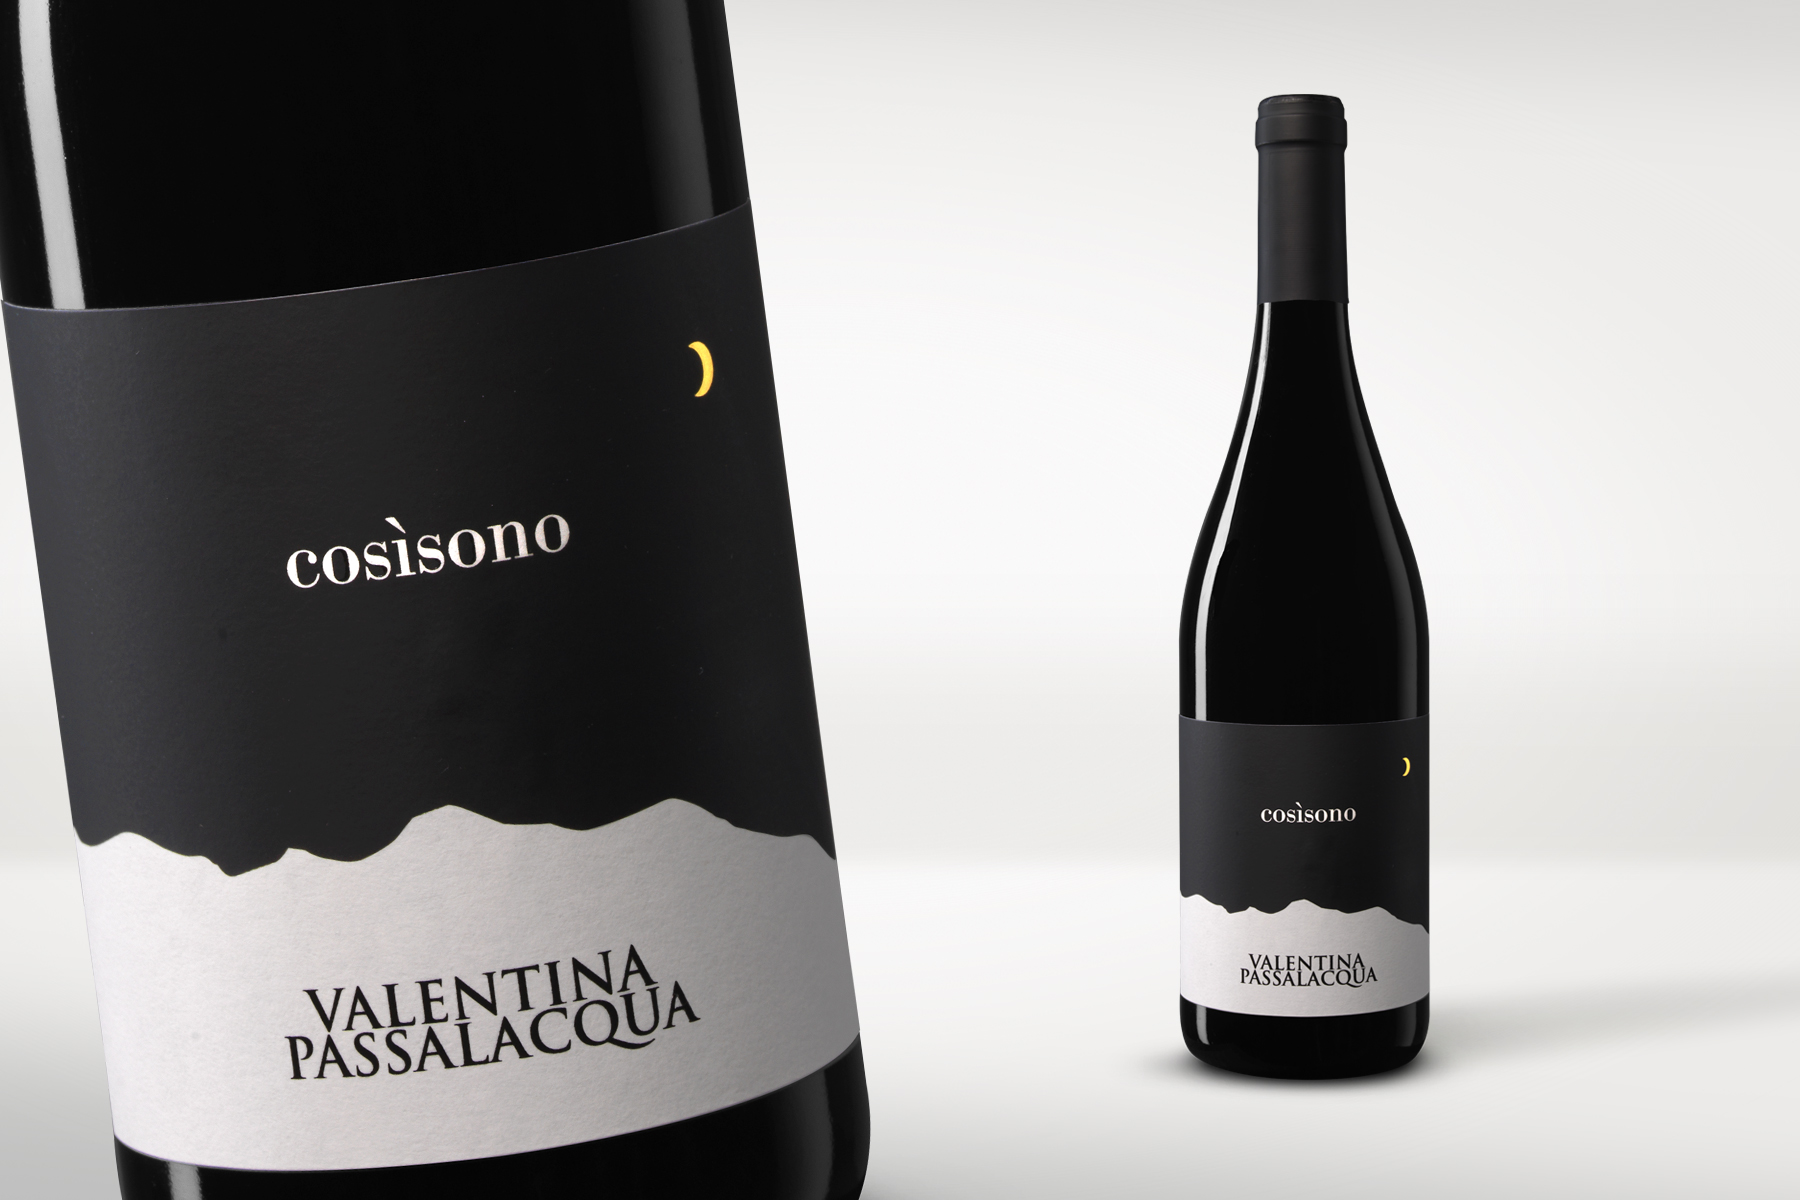 VALENTINA_PASSALACQUA_VINITALY_INTERNATIONAL_PACKAGING_2015_SPAZIODIPAOLO_05